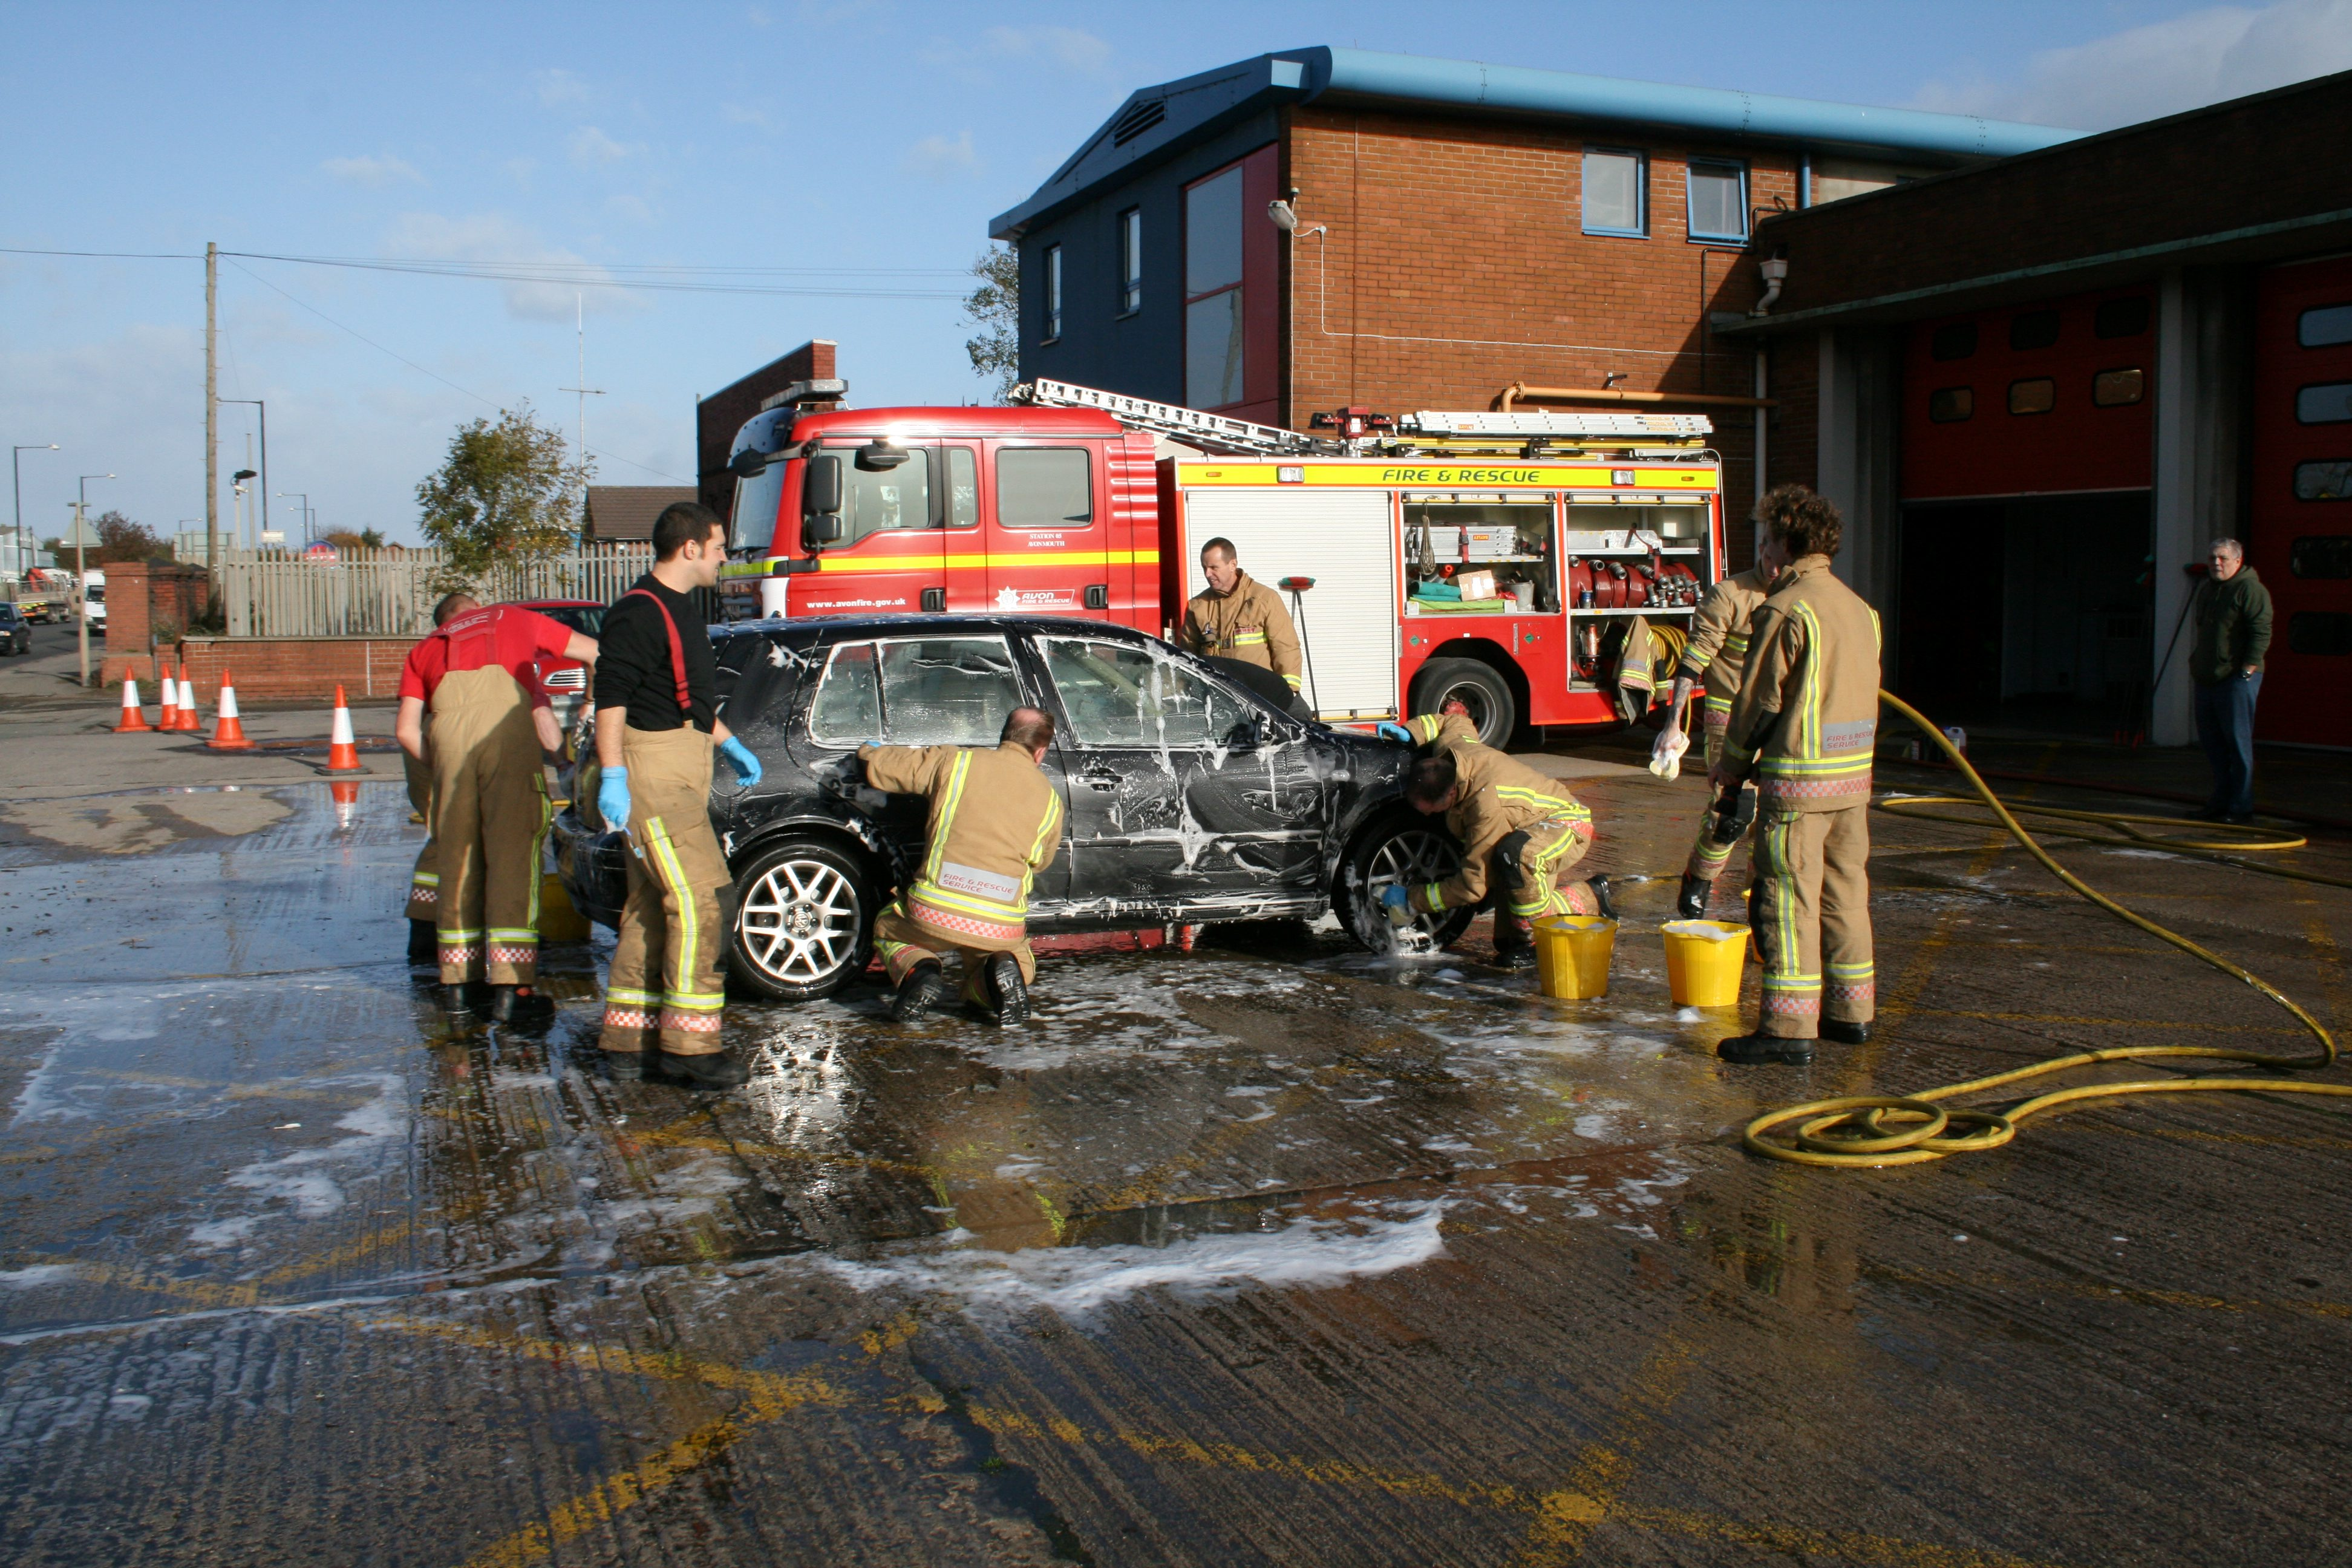 Hoses at the ready for charity car wash